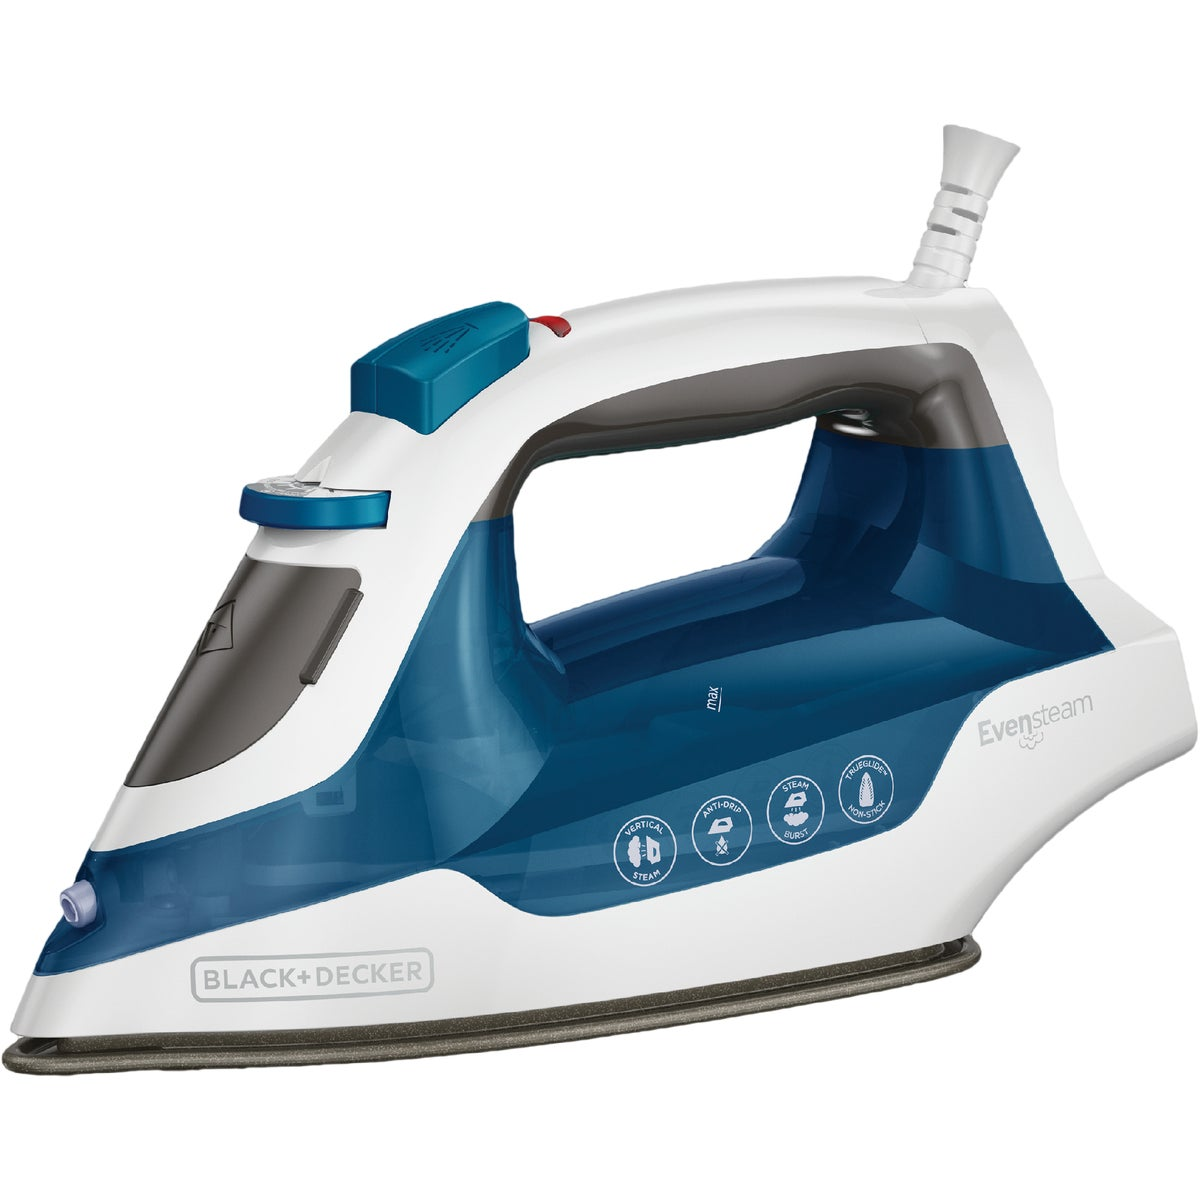 VALUE STEAM IRON